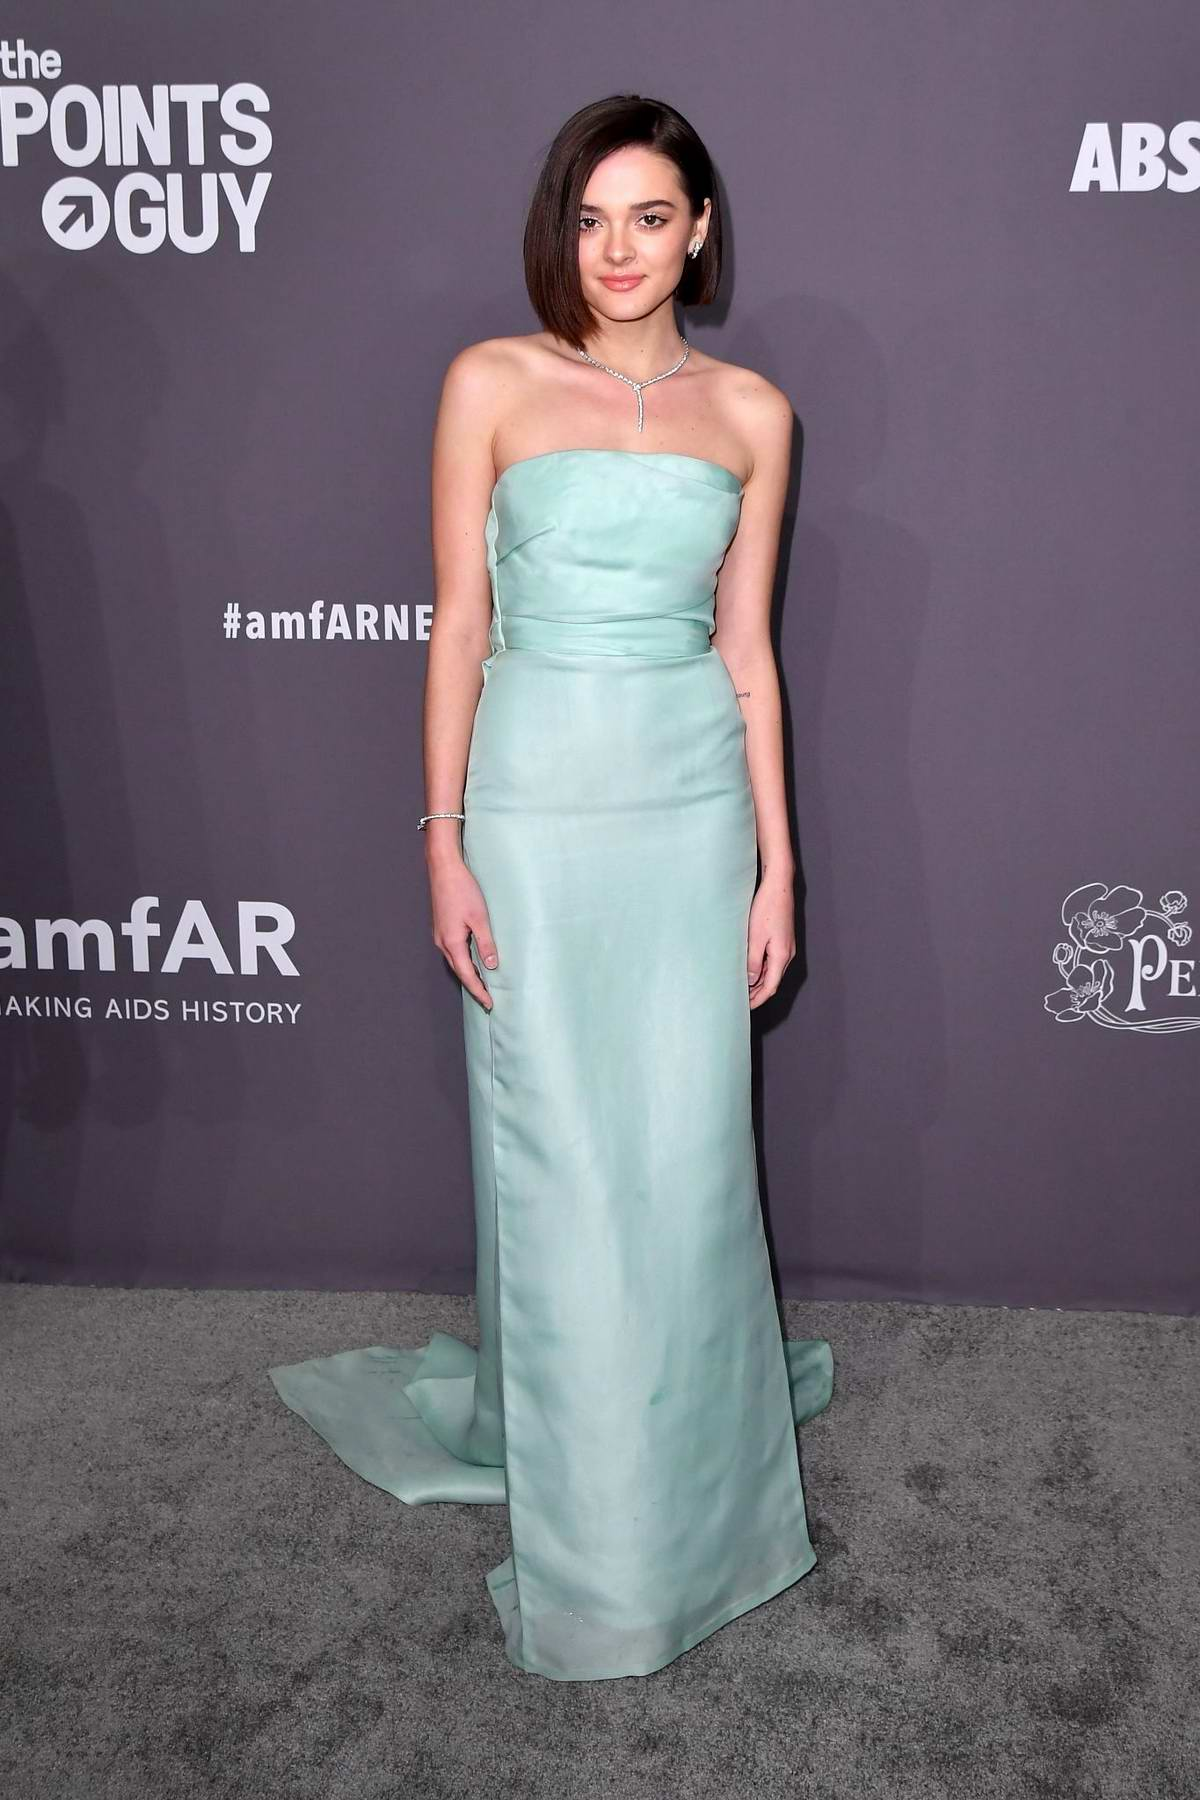 Charlotte Lawrence attends amfAR New York Gala 2019 at Cipriani Wall Street in New York City